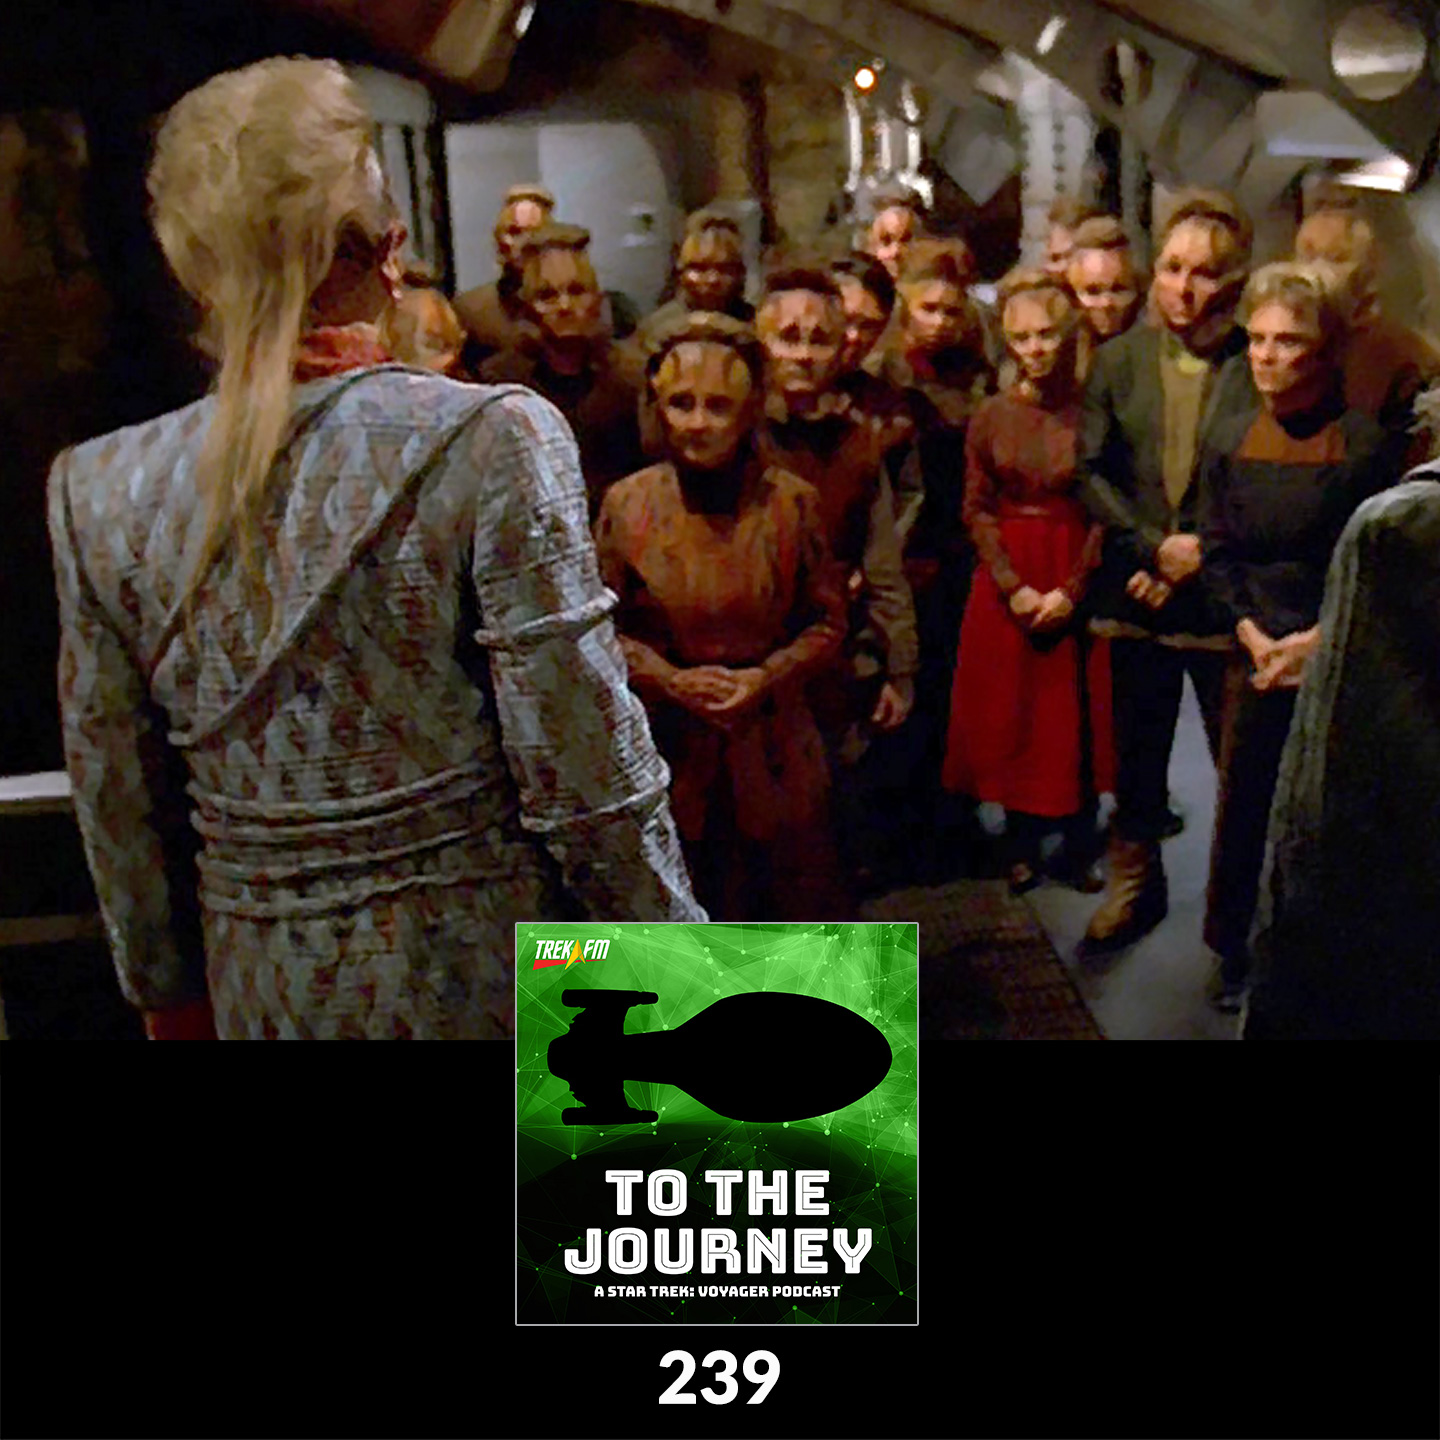 To The Journey 239: Large Lung Donor Pool - Non-Doctor/Seven Episodes in Seasons Five through Seven.